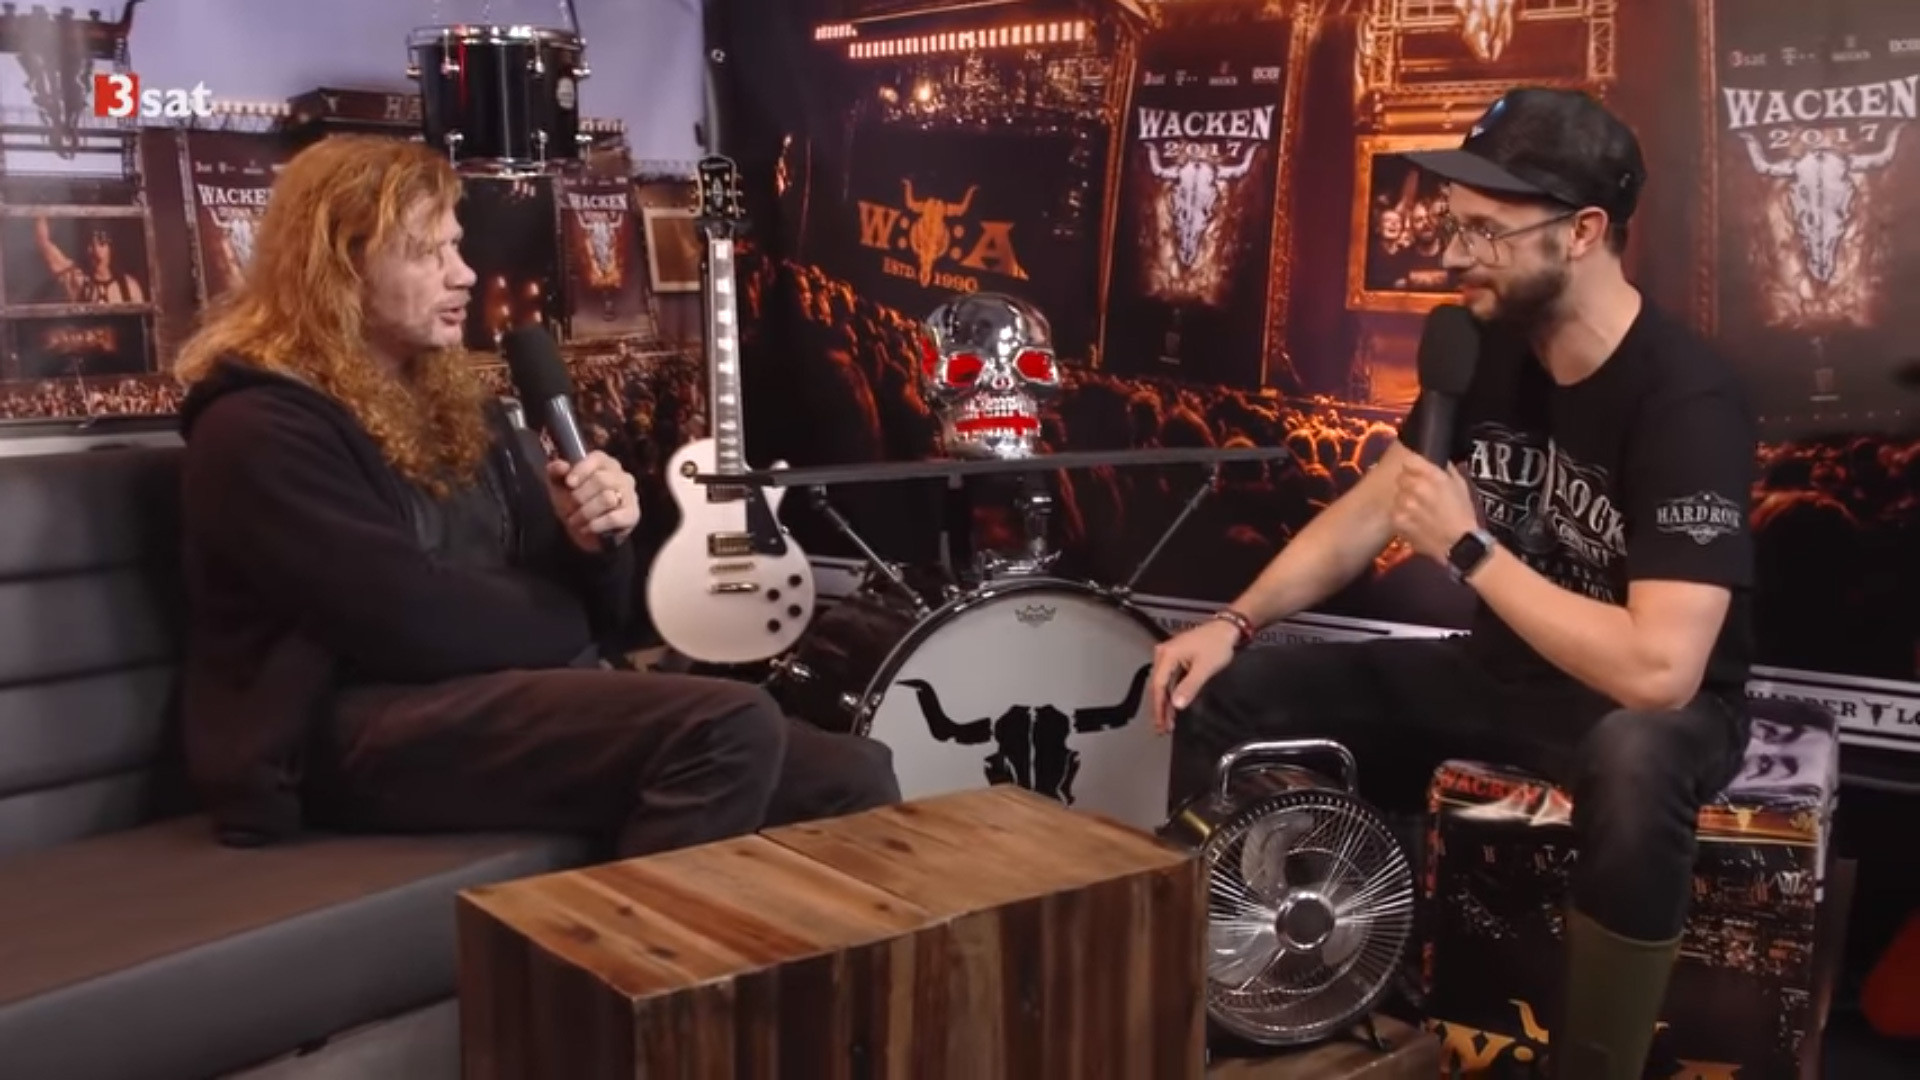 Res: 1920x1080, ... public broadcaster 3Sat conducted an interview with Dave Mustaine on  August 4 at this year's edition of the Wacken Open Air festival in Wacken,  Germany.